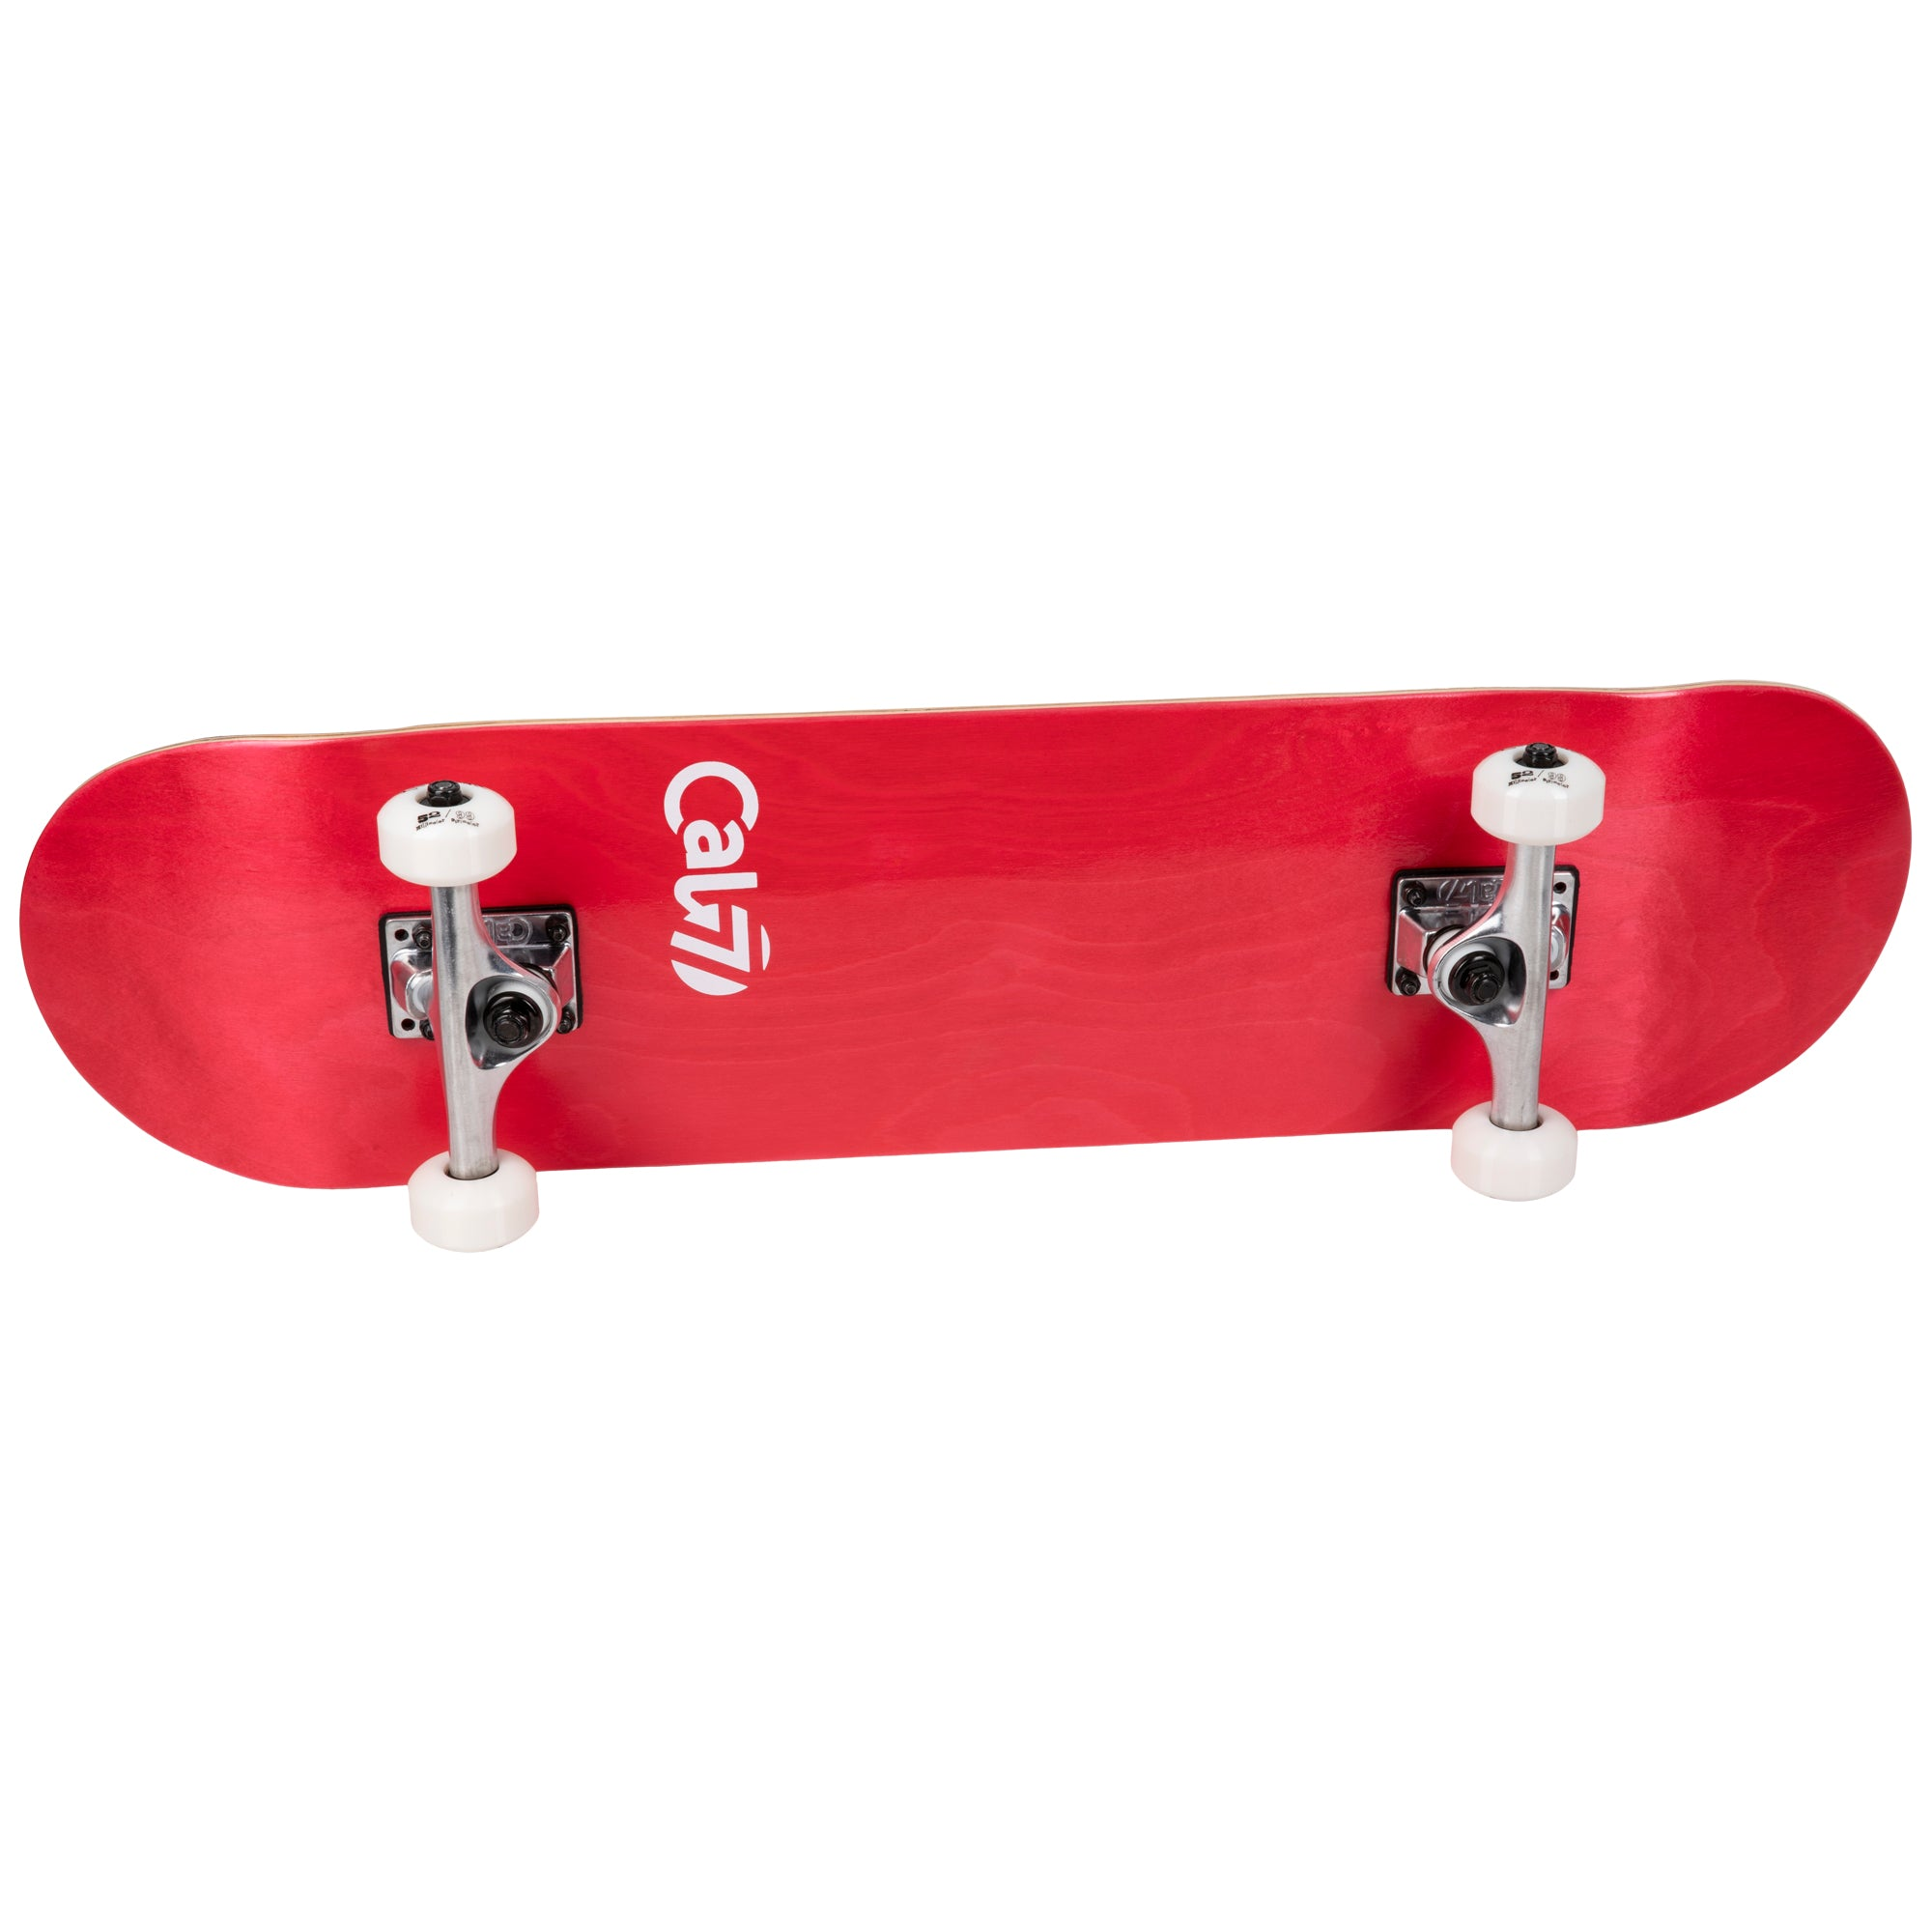 Cal 7 Complete 7.5/7.75/8-Inch Skateboard Crimson with Logo and Red Stain